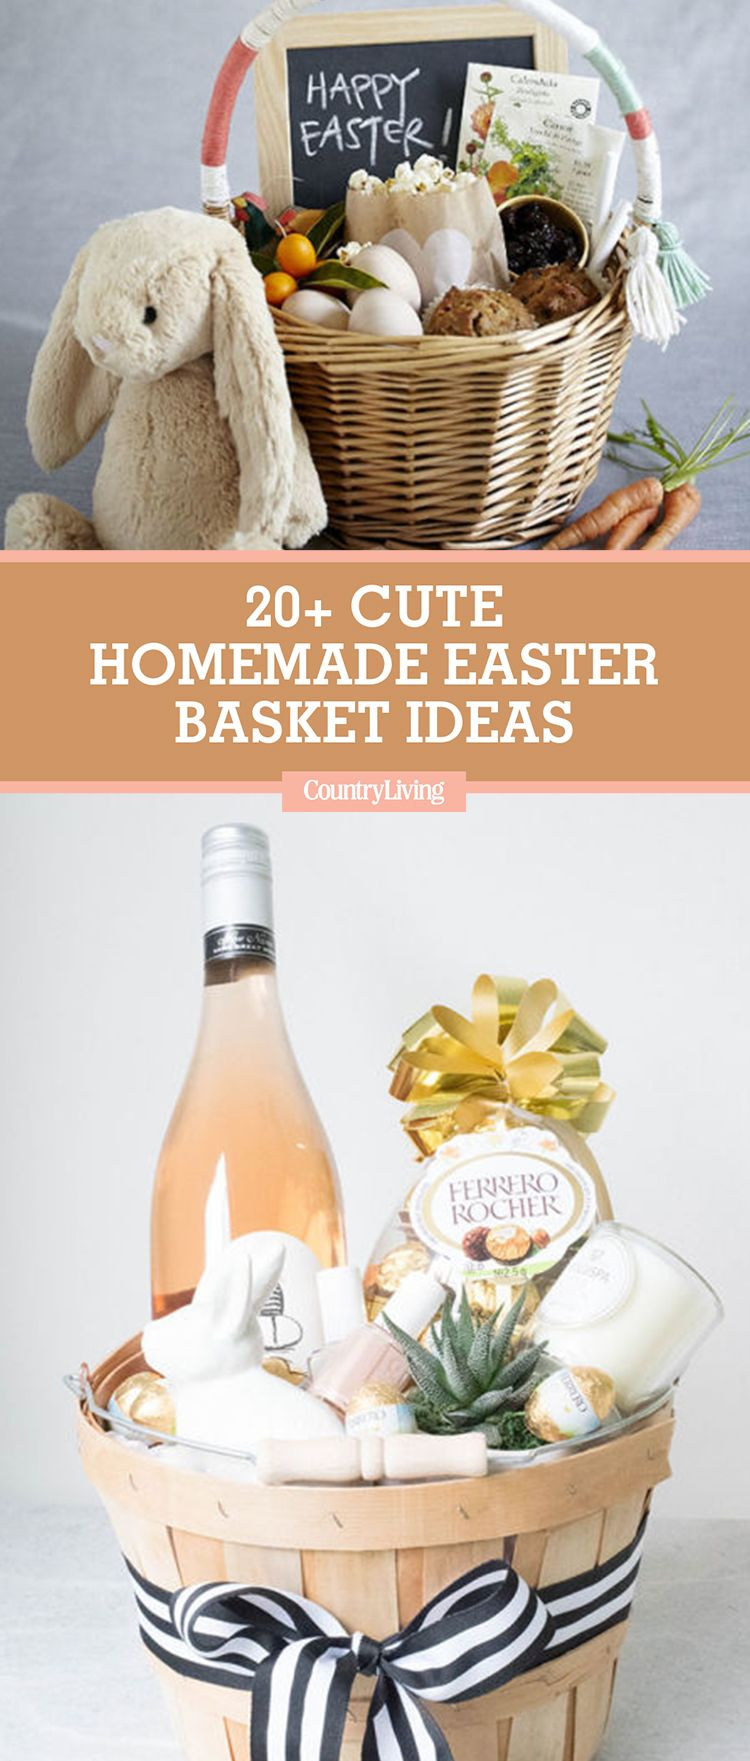 Get Egg Cited About These Diy Easter Basket Ideas Homemade